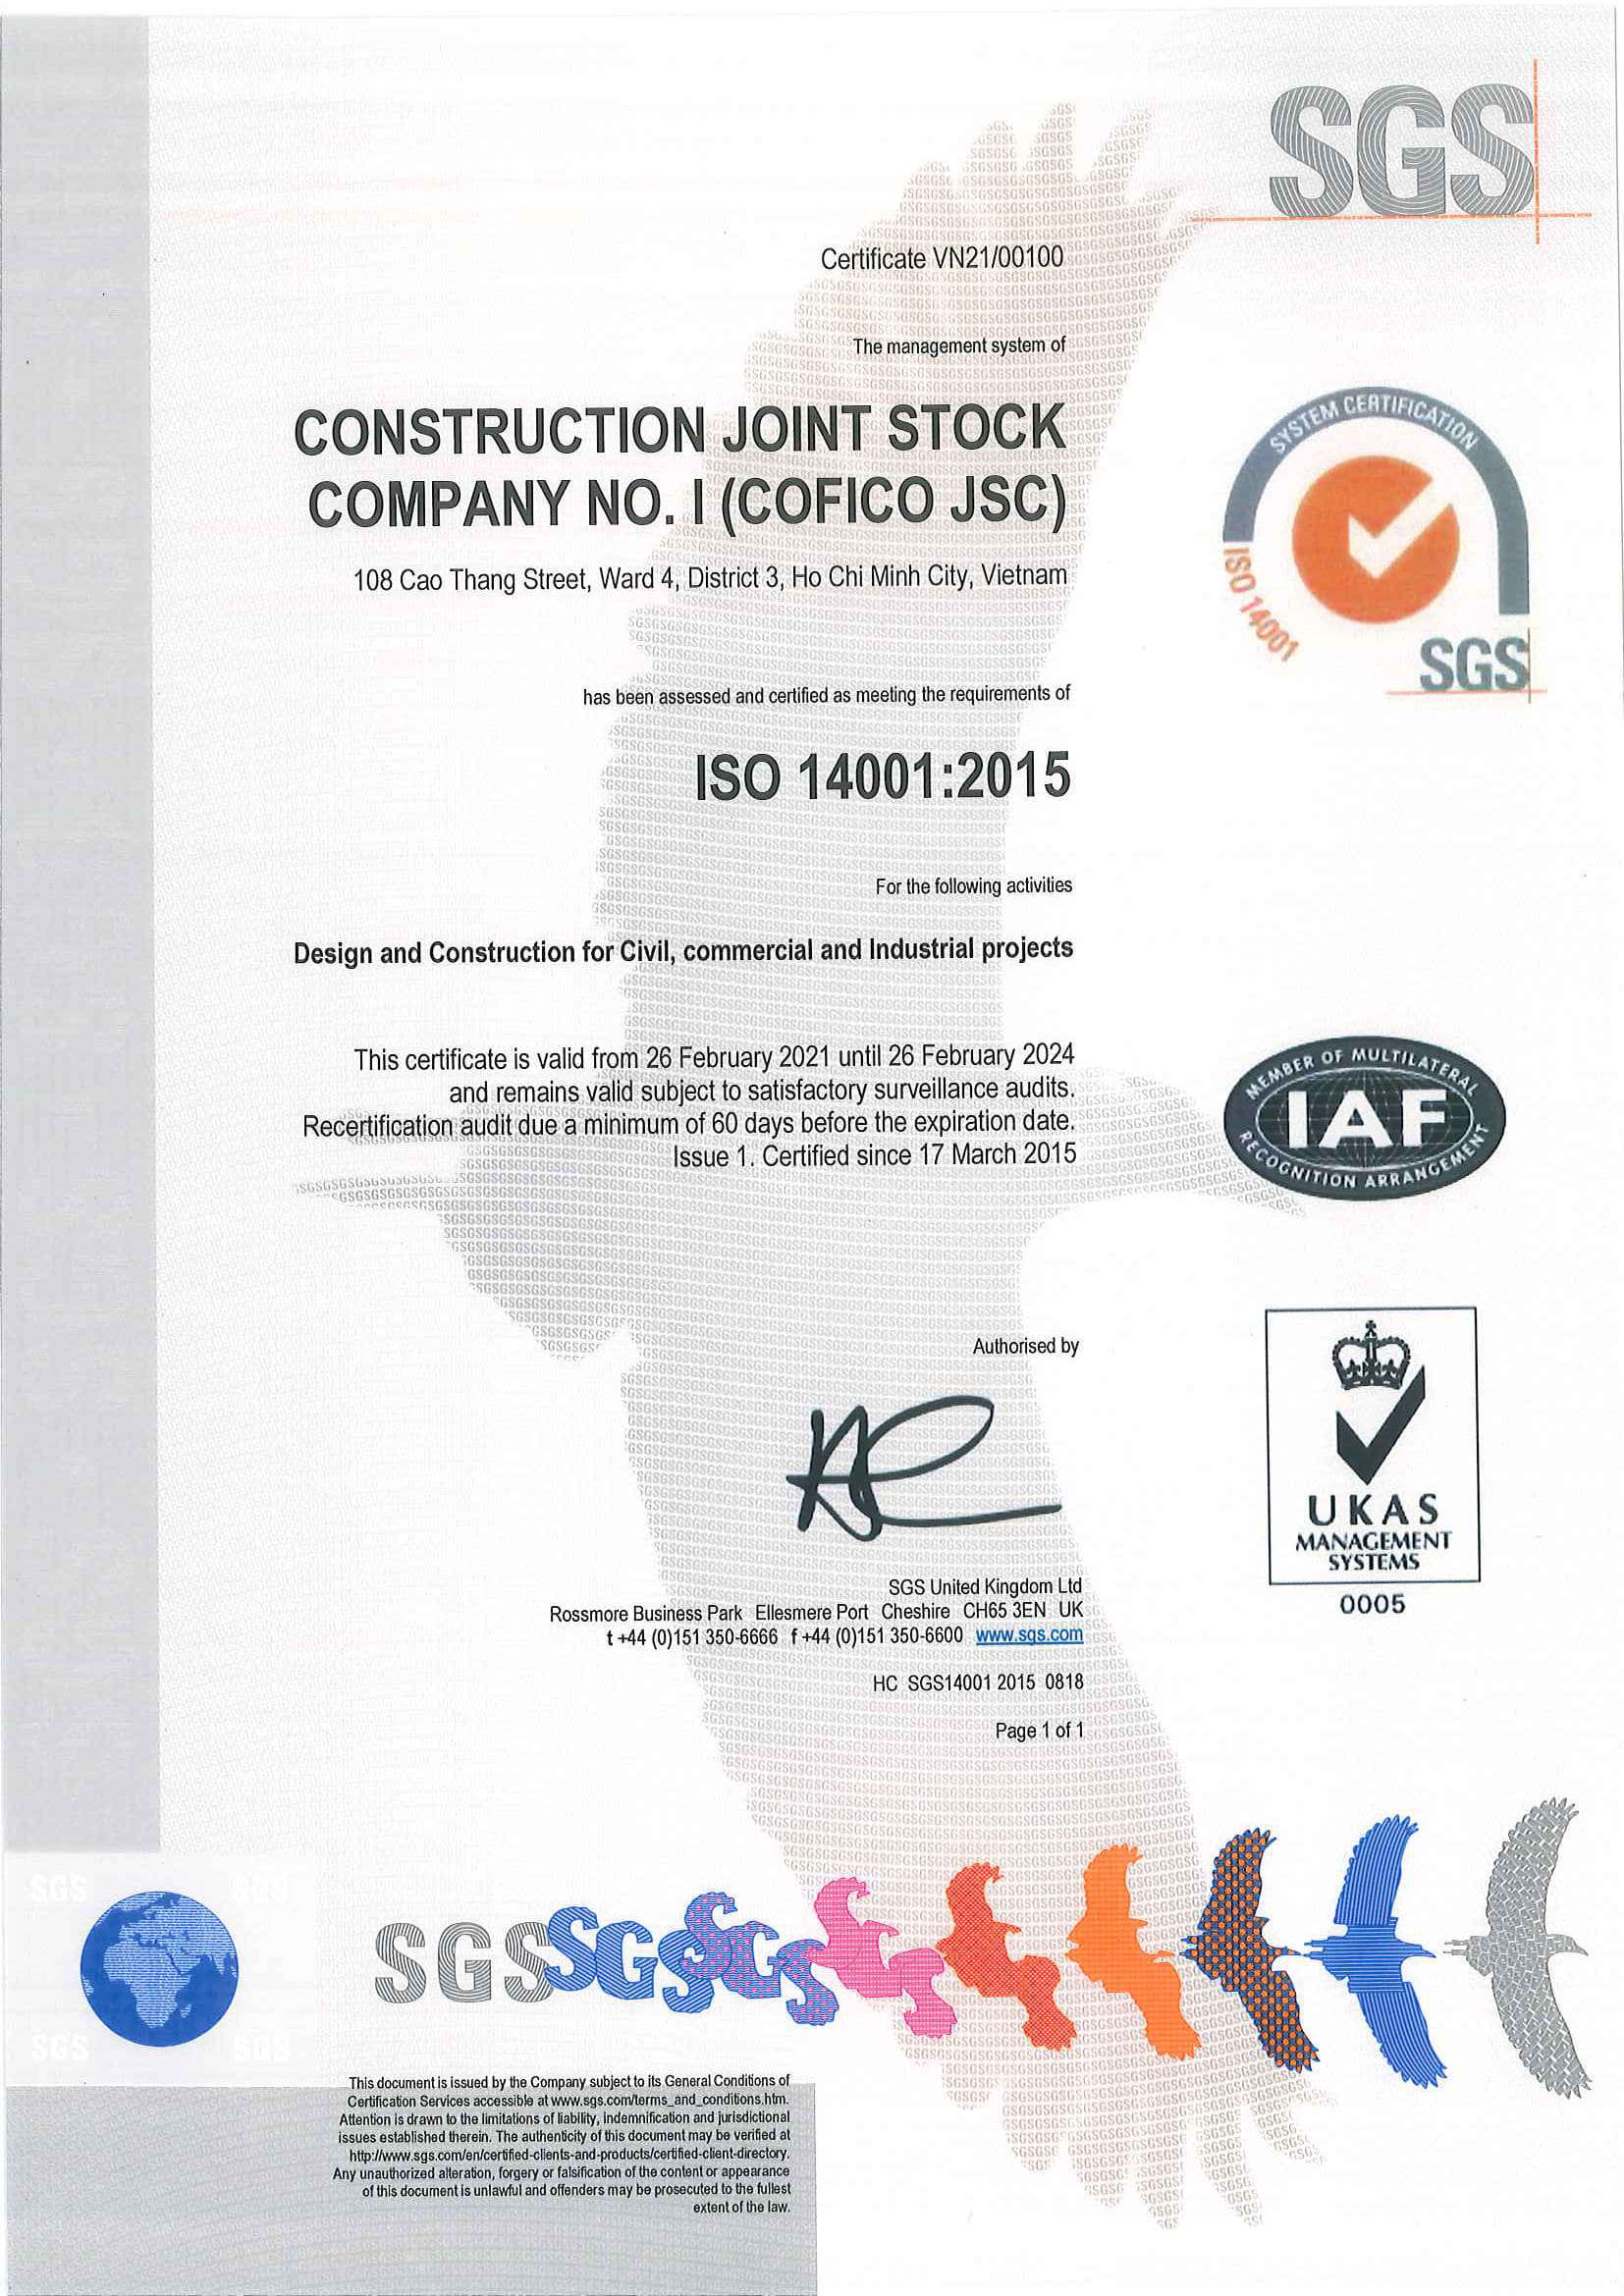 The certificate of ISO 14001:2015